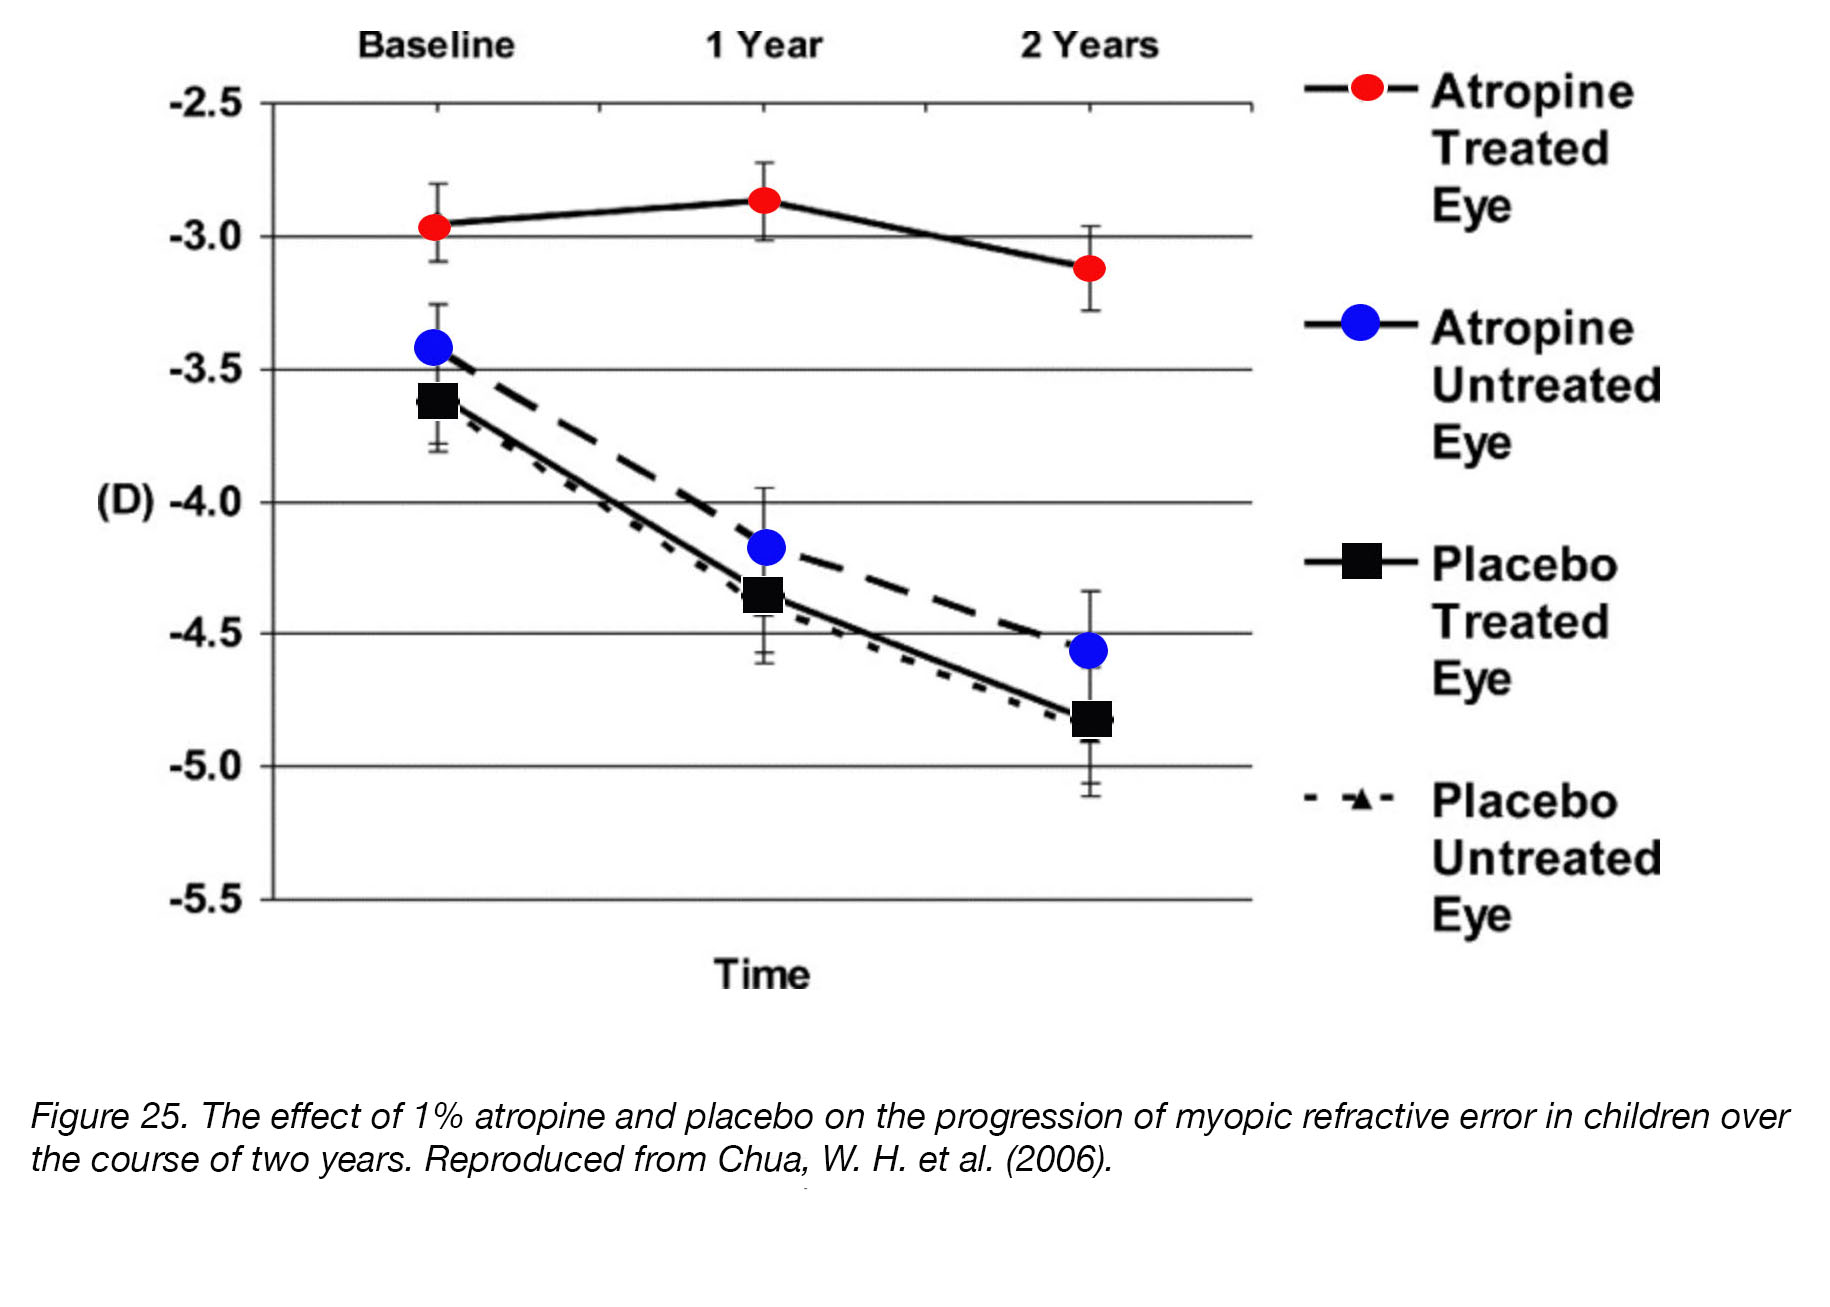 hight resolution of figure 25 the effect of 1 atropine and placebo on the progression of myopic refractive error in children over the course of two years